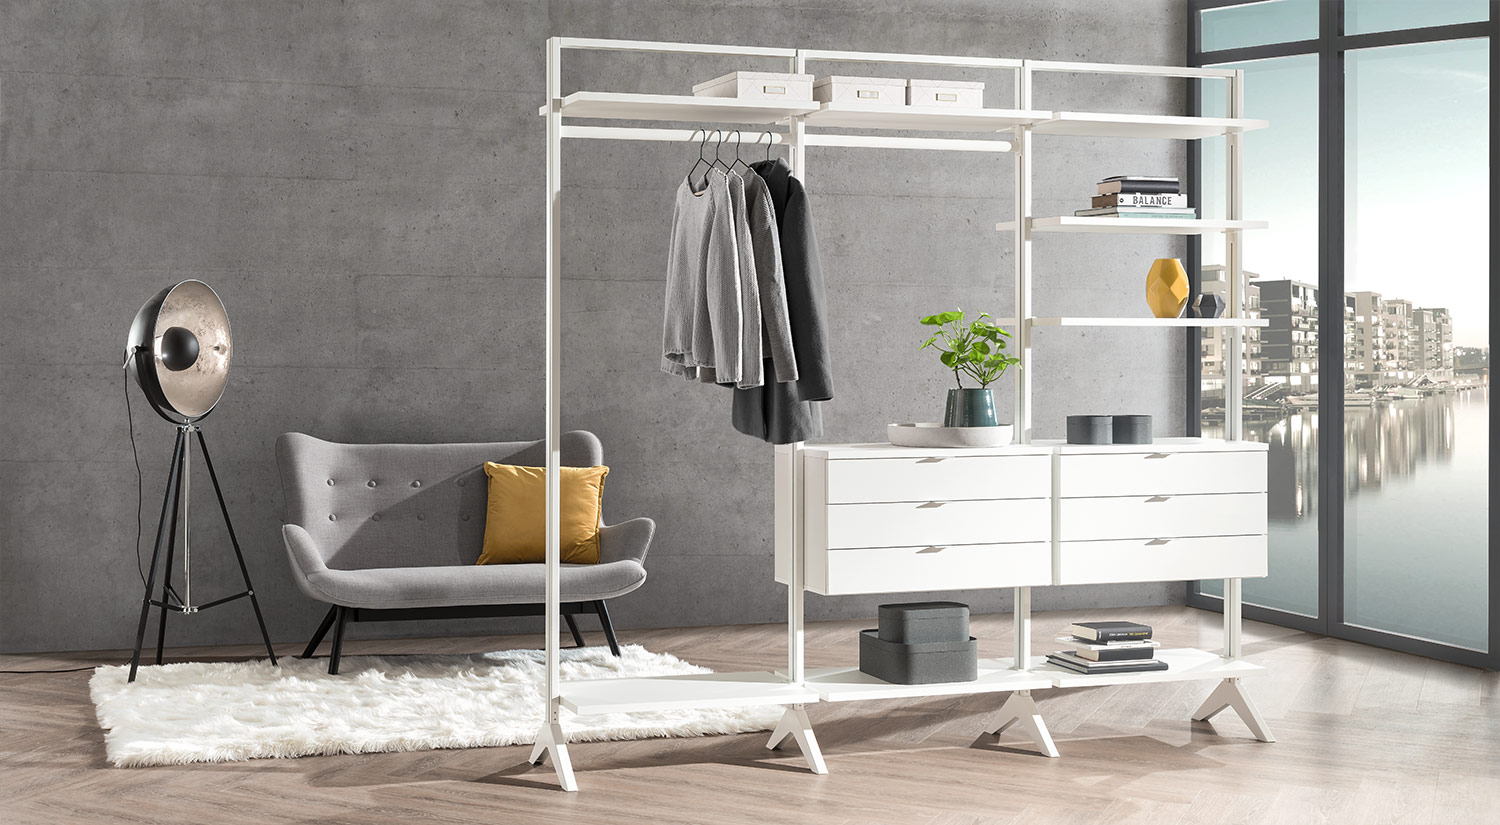 Free standing shelf - CLOOS-IT room divider free standing shelf in the living room